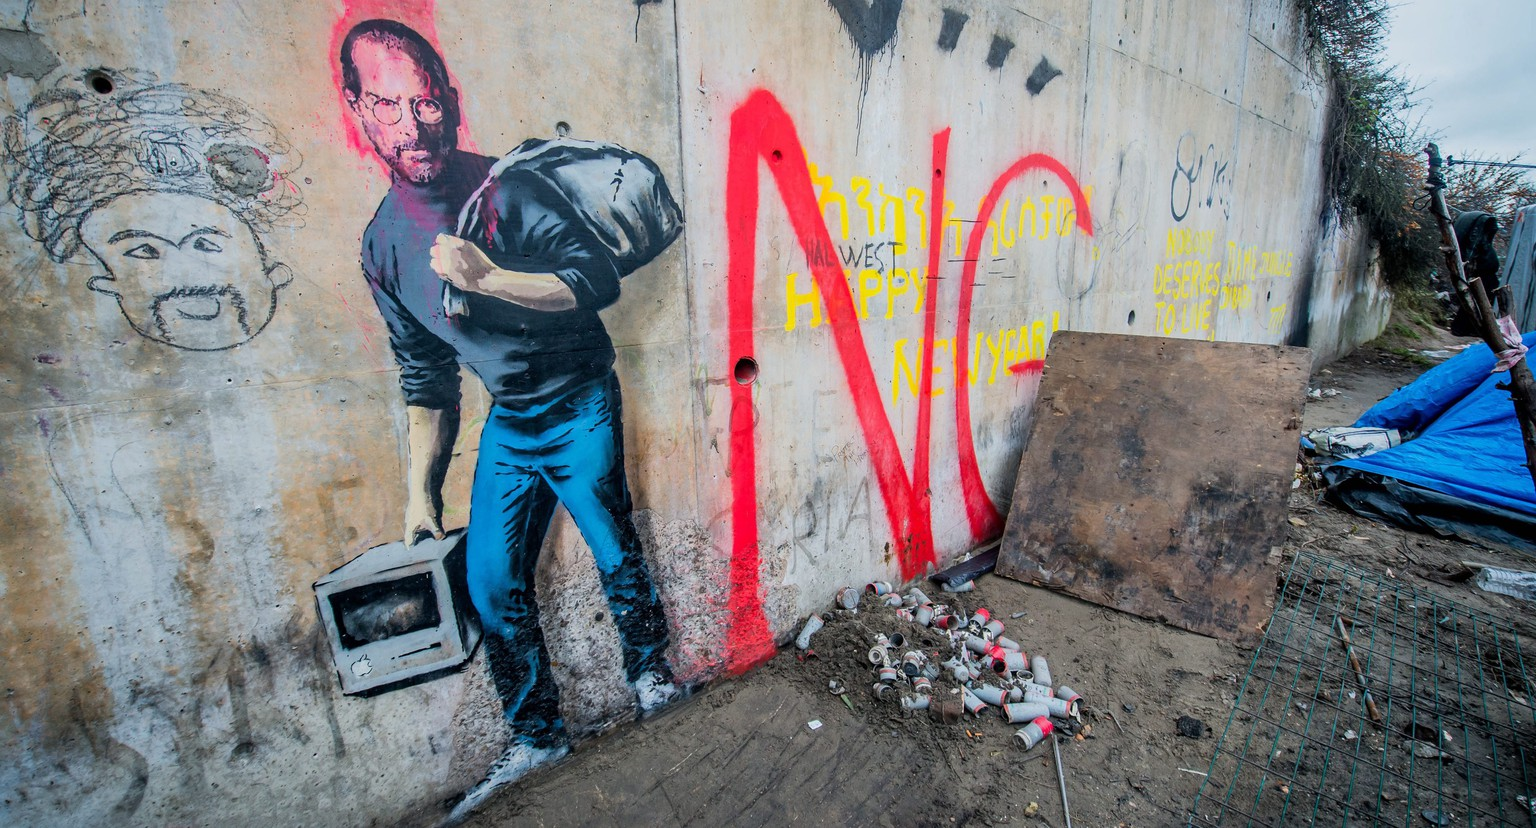 epa05080941 A tag of the artist Banksy representative Steve Jobs in the camp called 'The Jungle' in the port of Calais, France, 25 December 2015.  By this Banksy tag means that Steve Jobs was also a Syrian migrant son come Holms. He said.